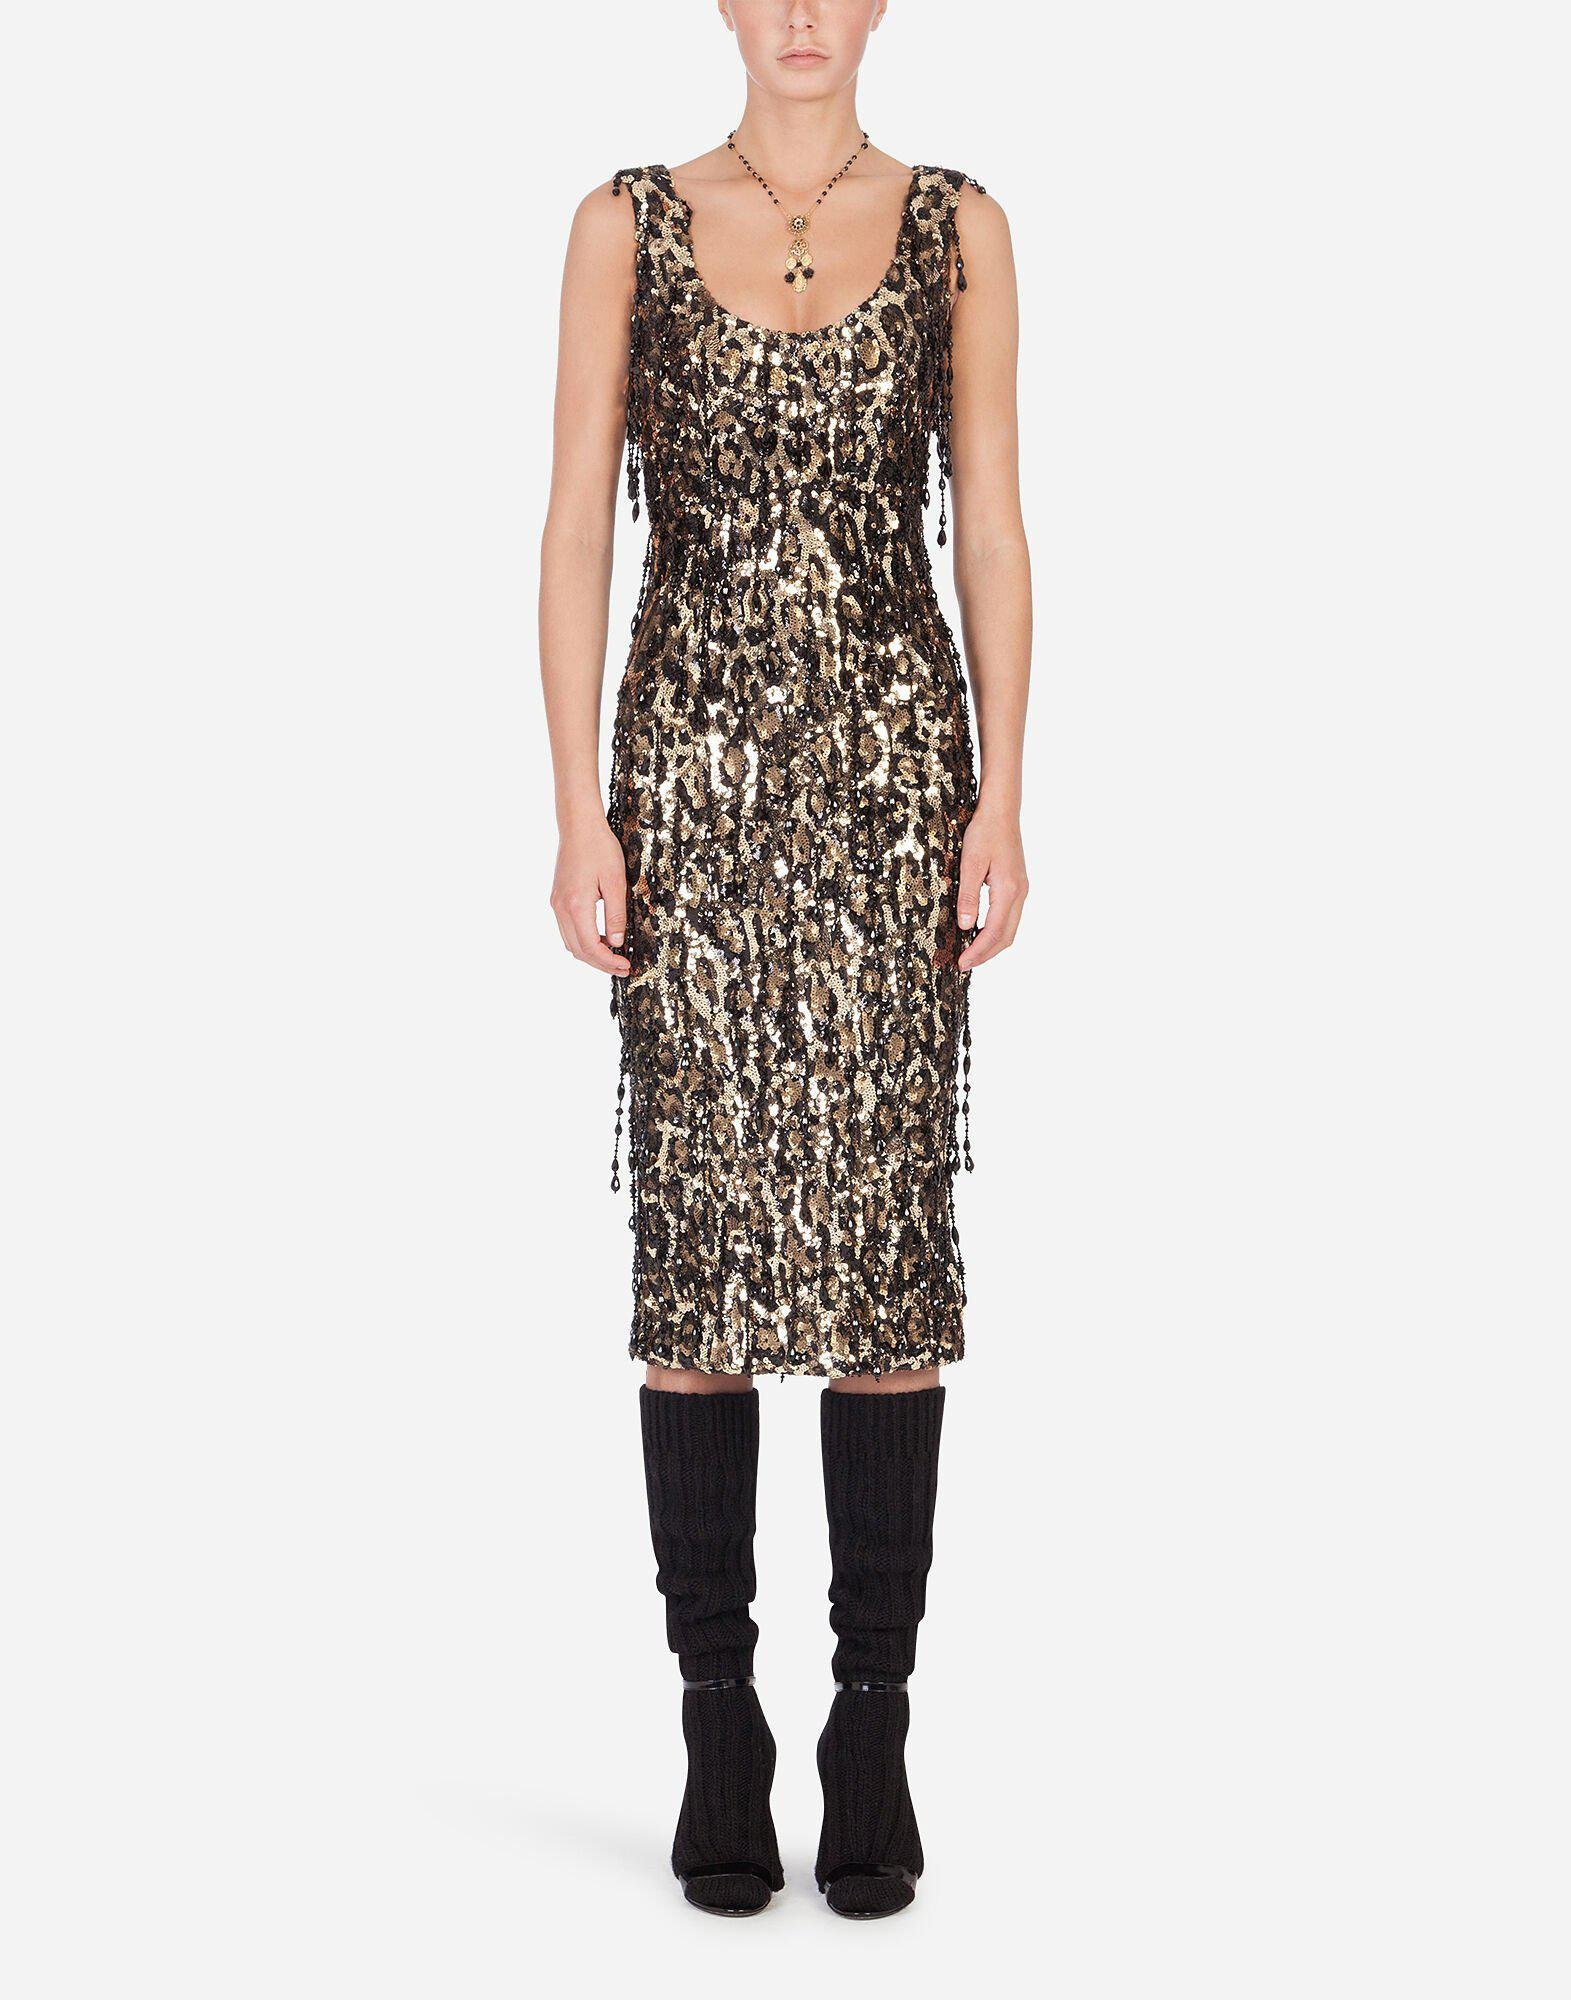 Sheath dress with leopard-look sequin embellishment